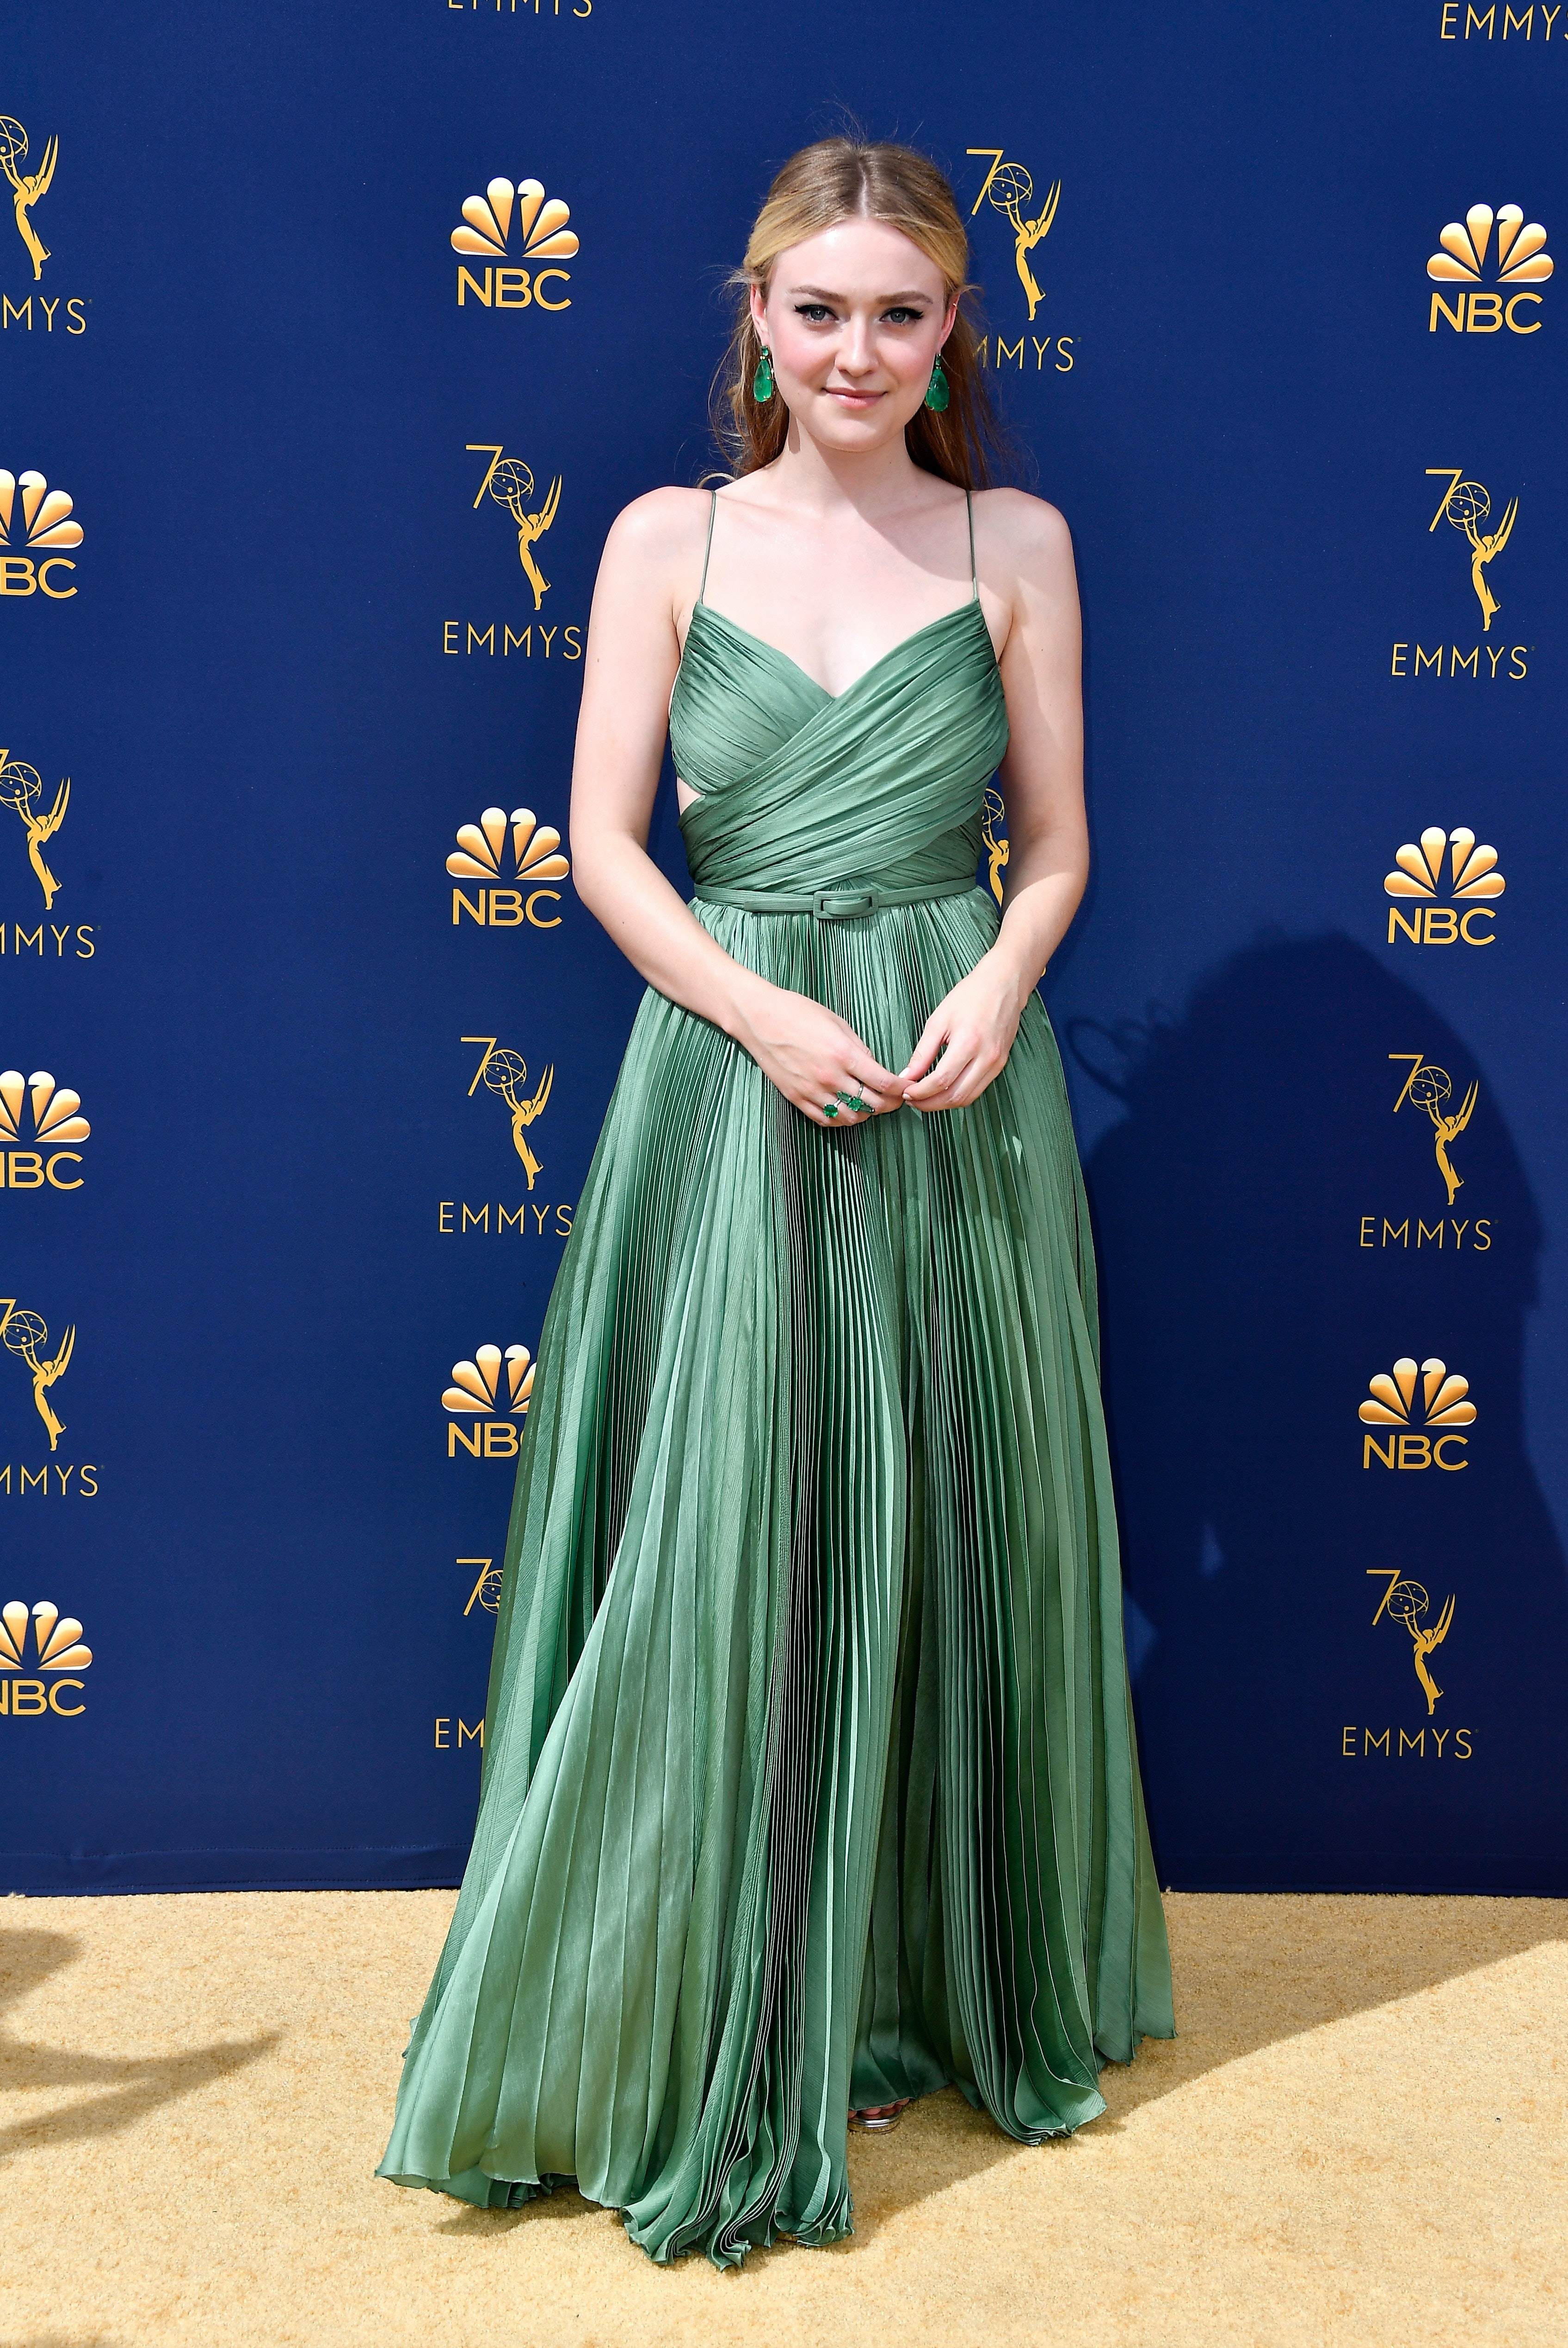 Every 2018 Emmy Awards Dress From The Red Carpet